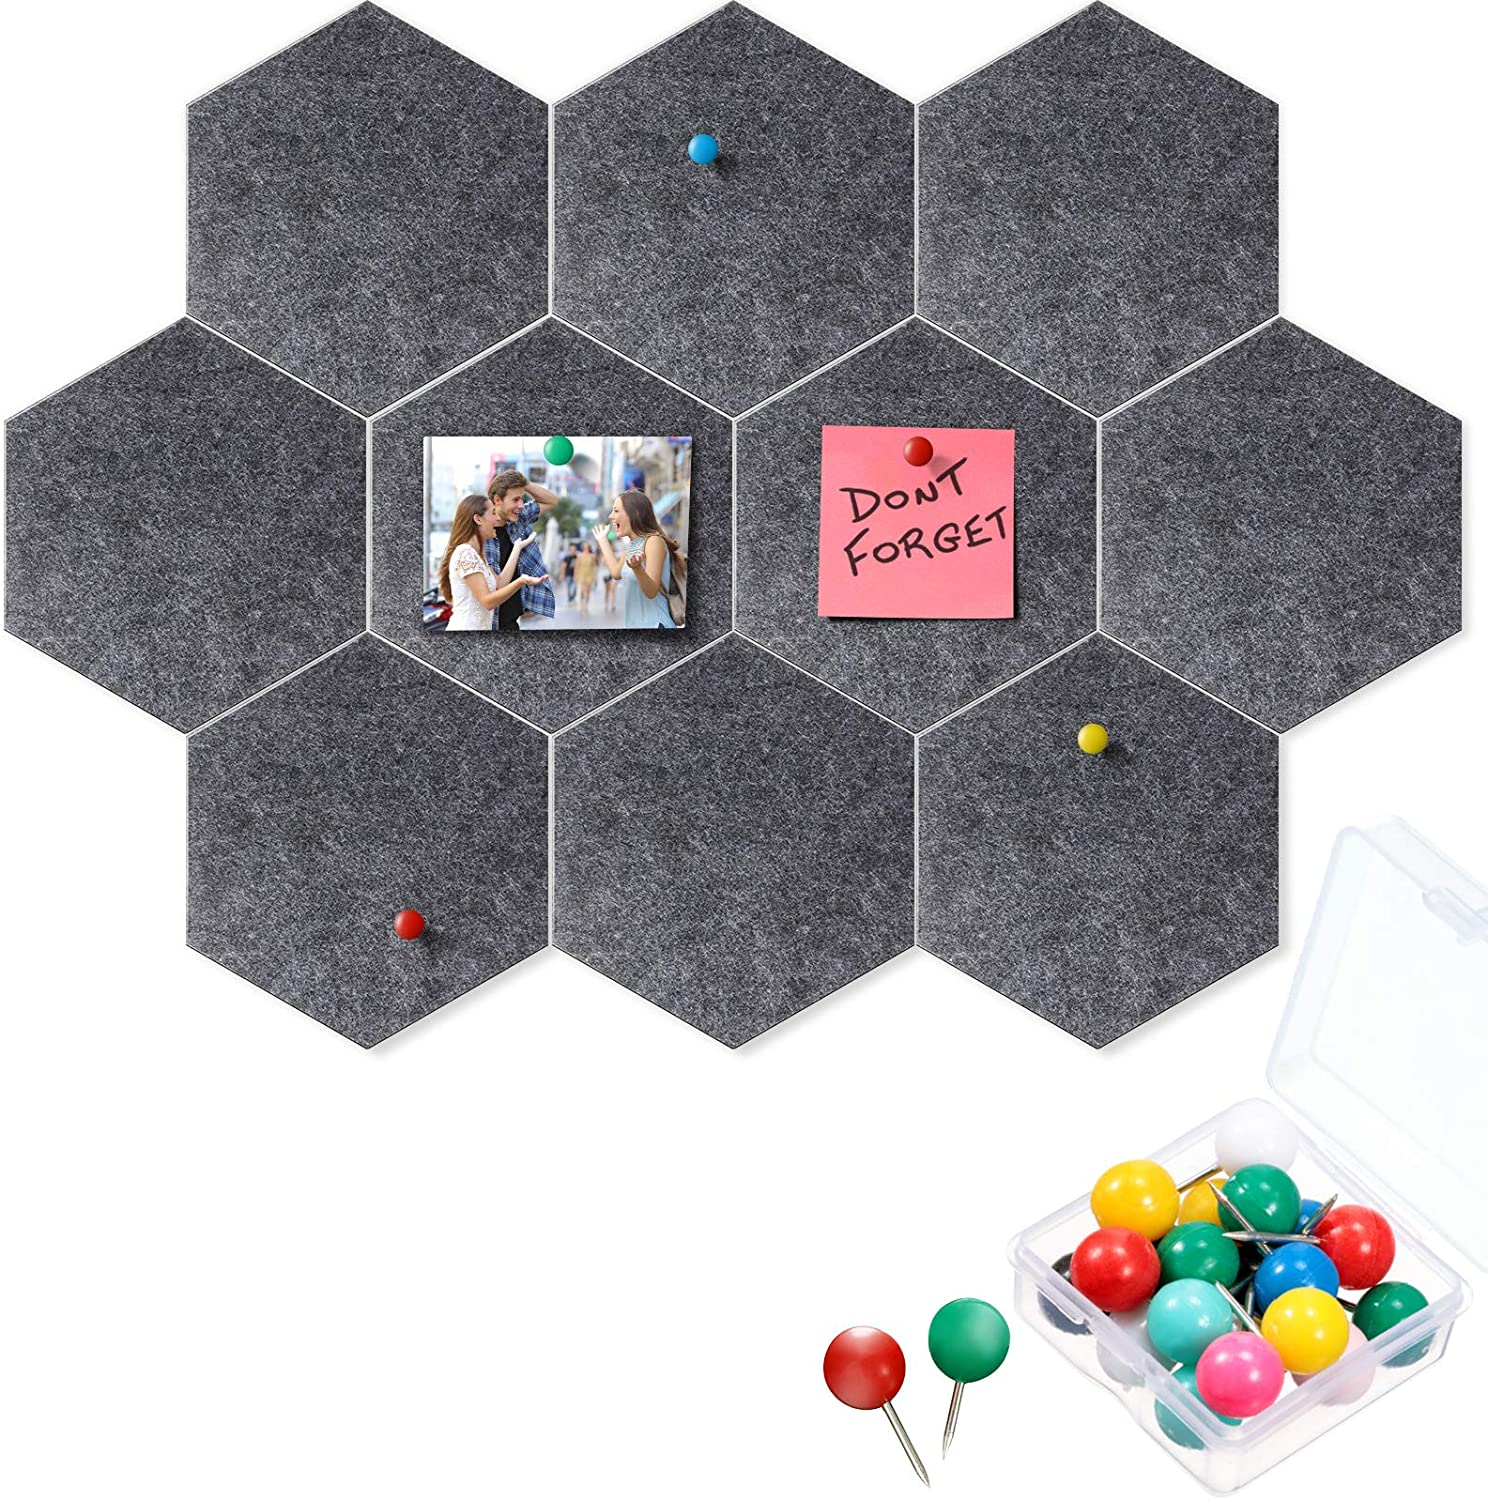 10 Packs Pin Board Hexagon Felt Board Tiles Bulletin Board Memo Board with 20 Pieces Push Pins, Decoration for Home Office Classroom Wall (Dark Gray, 5.9 x 7 Inches/ 15 x 17.7 cm)